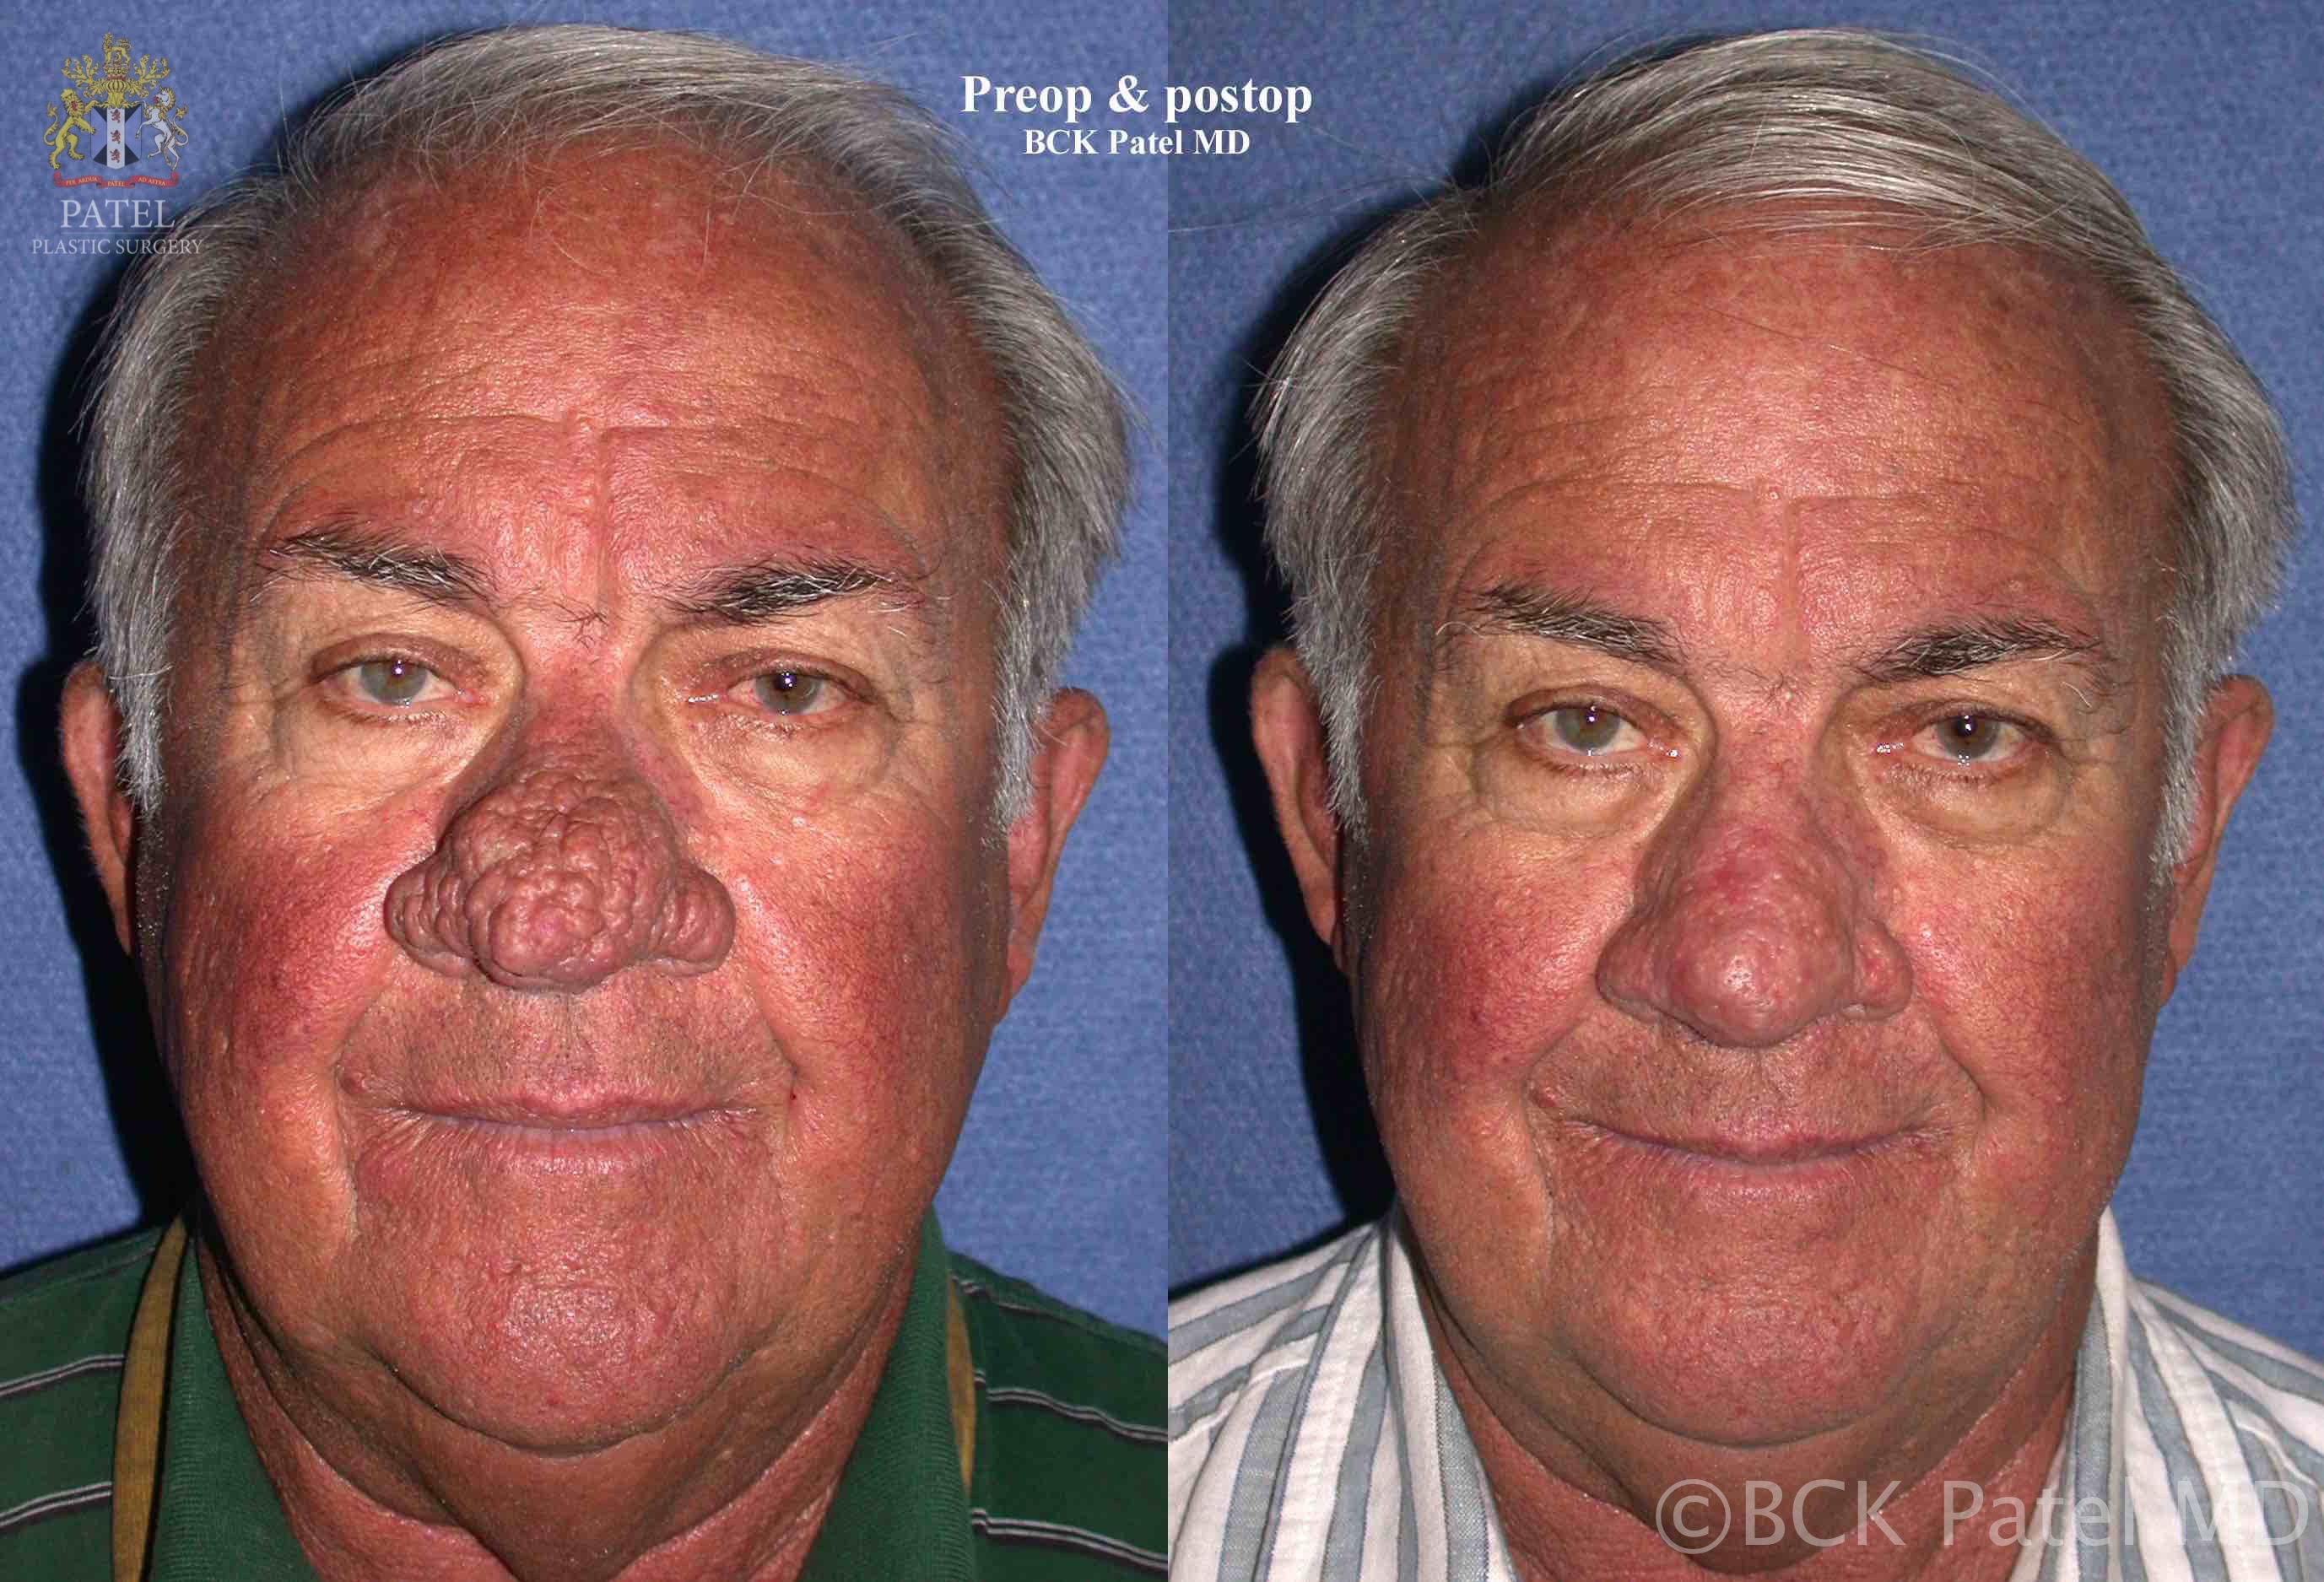 58-year-old gentleman undersent scalpel resection of the rhinophyma and immediate CO2 laser resurfacing and shrinkage of the surrounding tissues with healing by secondary intention. Photos show the appearance 4 months after resection of the rhinophyma.